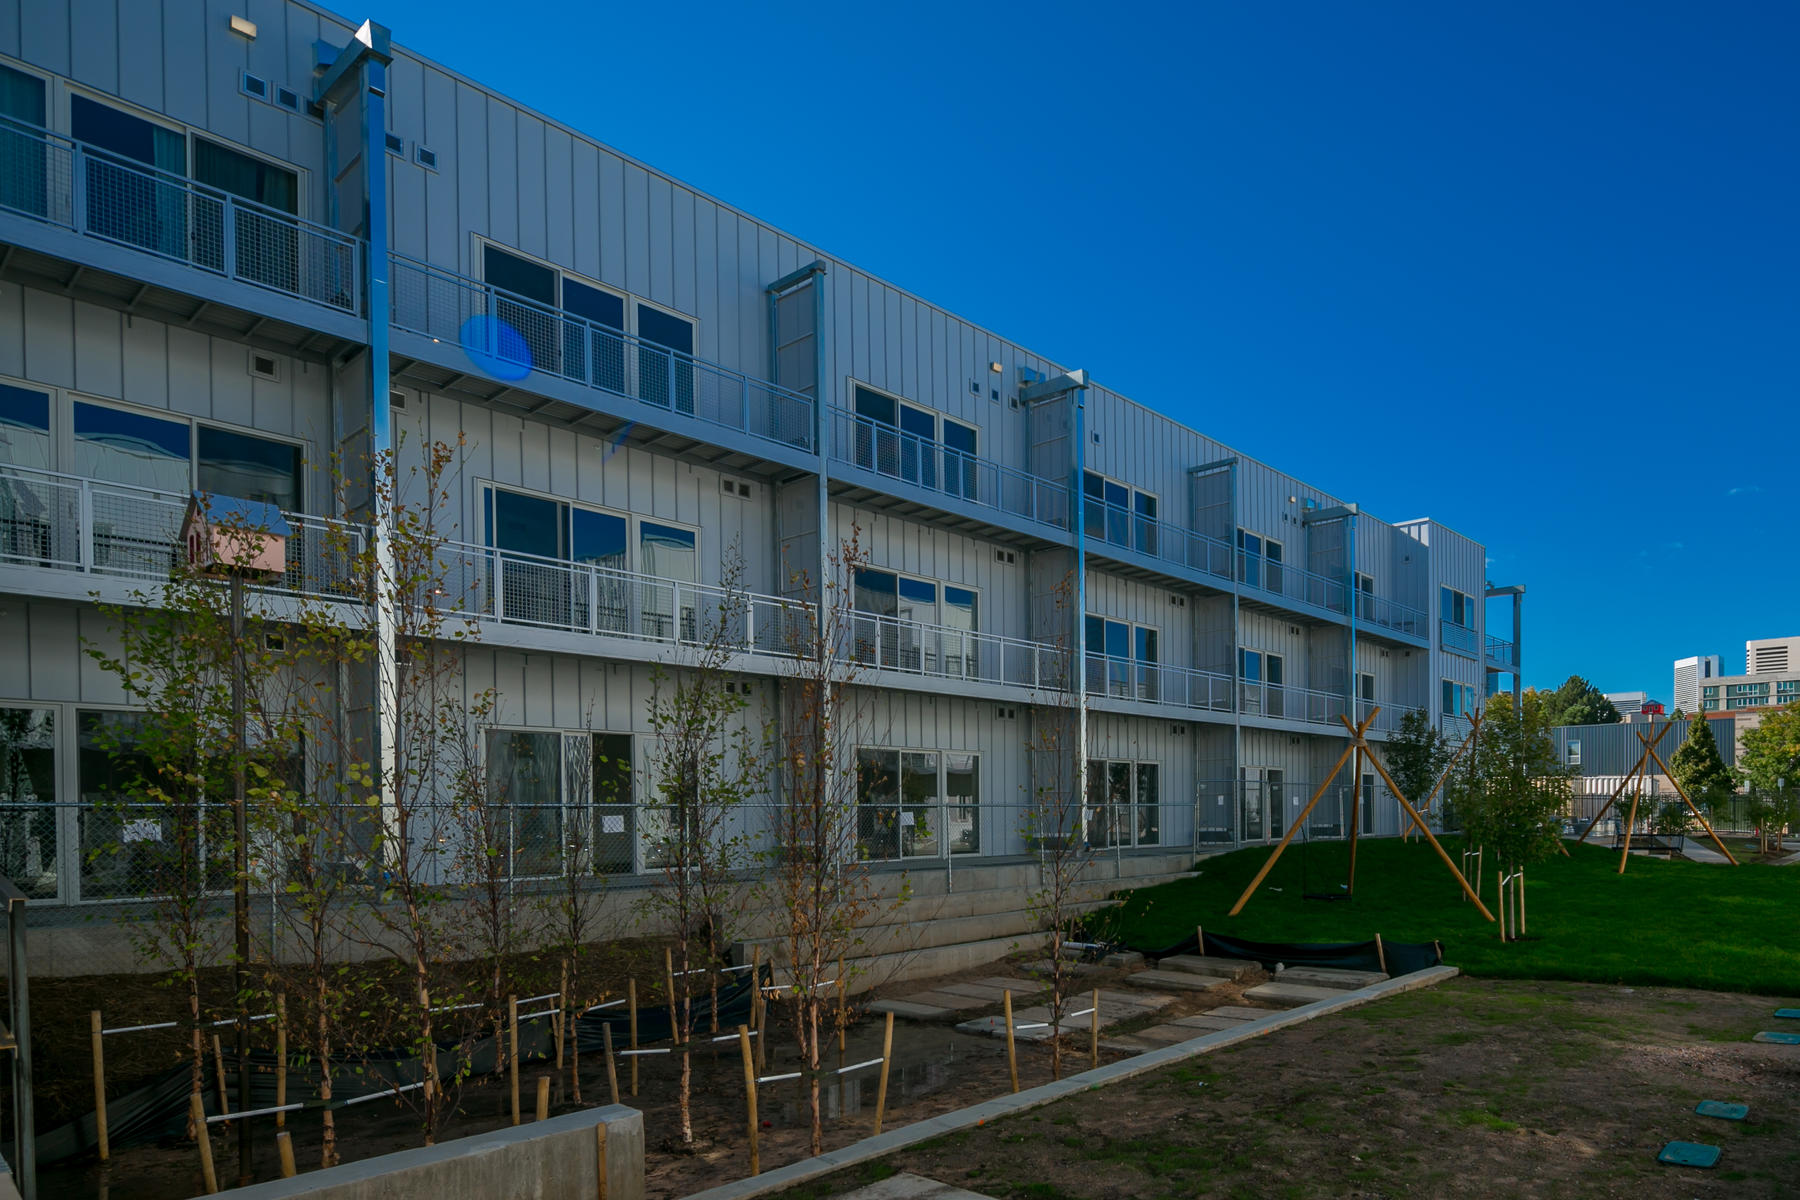 Additional photo for property listing at Cutting Edge And Architecturally Savvy Design 2550 Lawrence St #102 Denver, Colorado 80202 United States